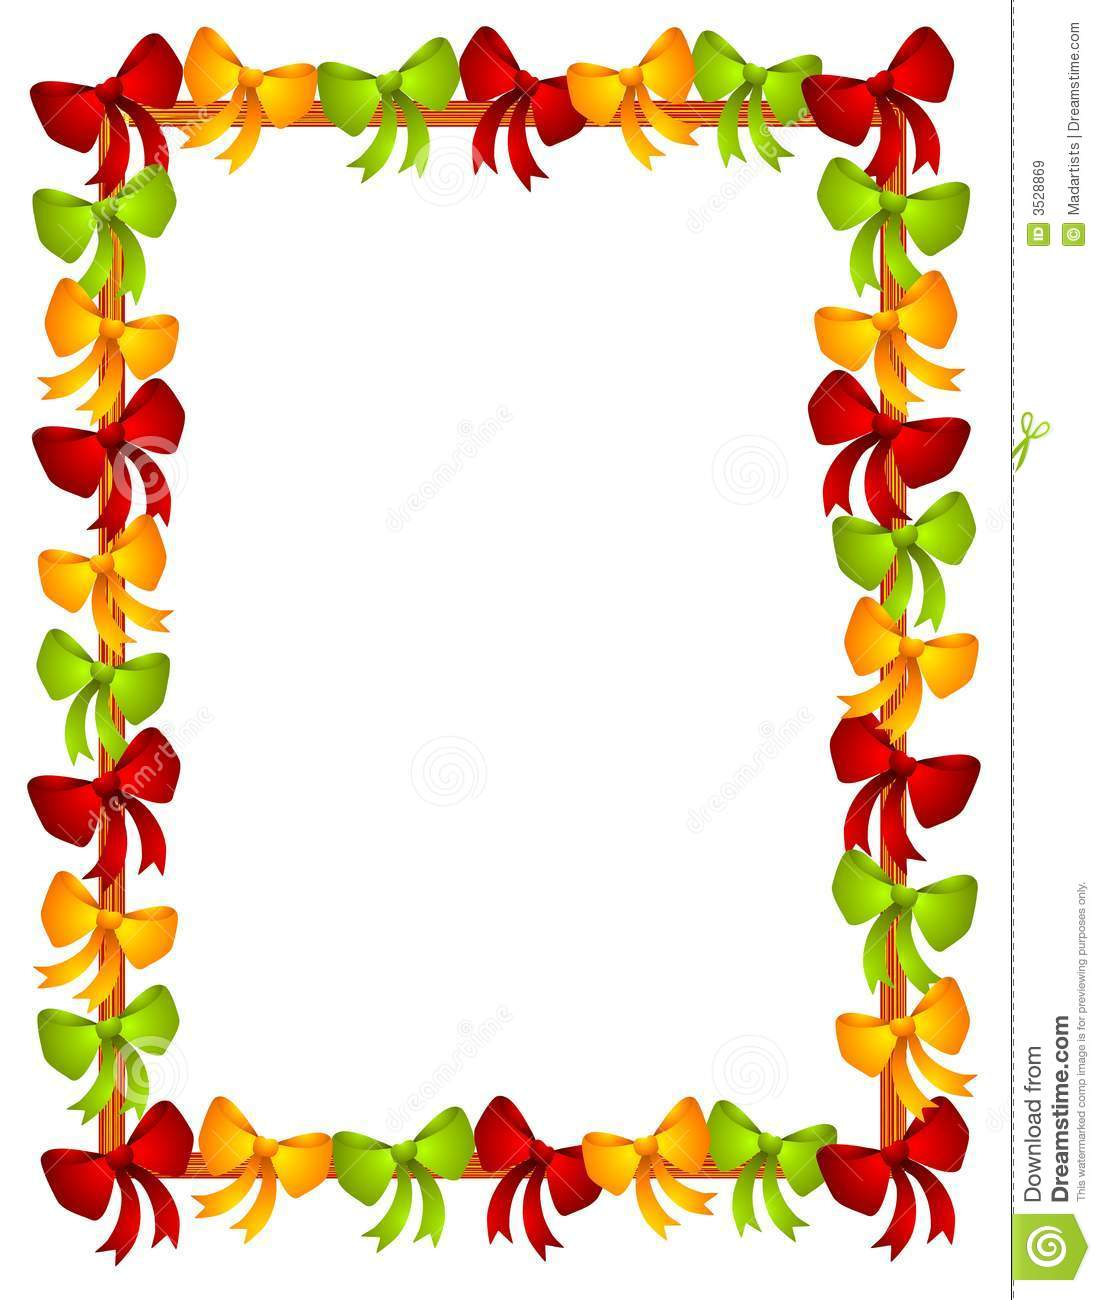 holiday borders for word documents.